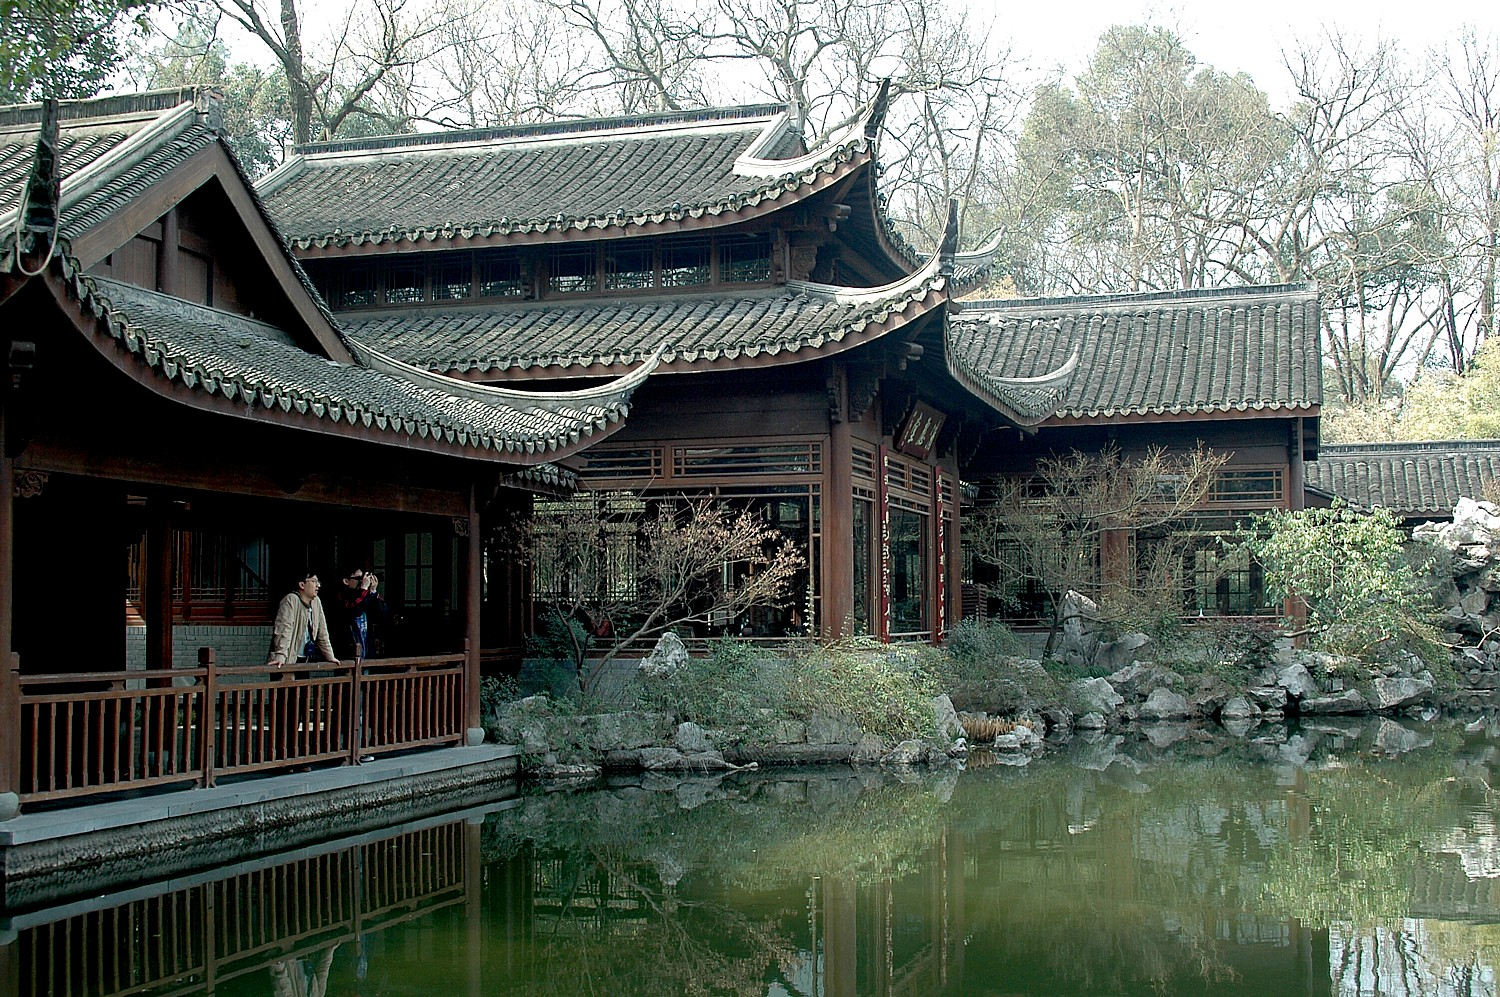 A historic villa at West Lake serves as a tea house © 2016 Karen Rubin/goingplacesfarandnear.com